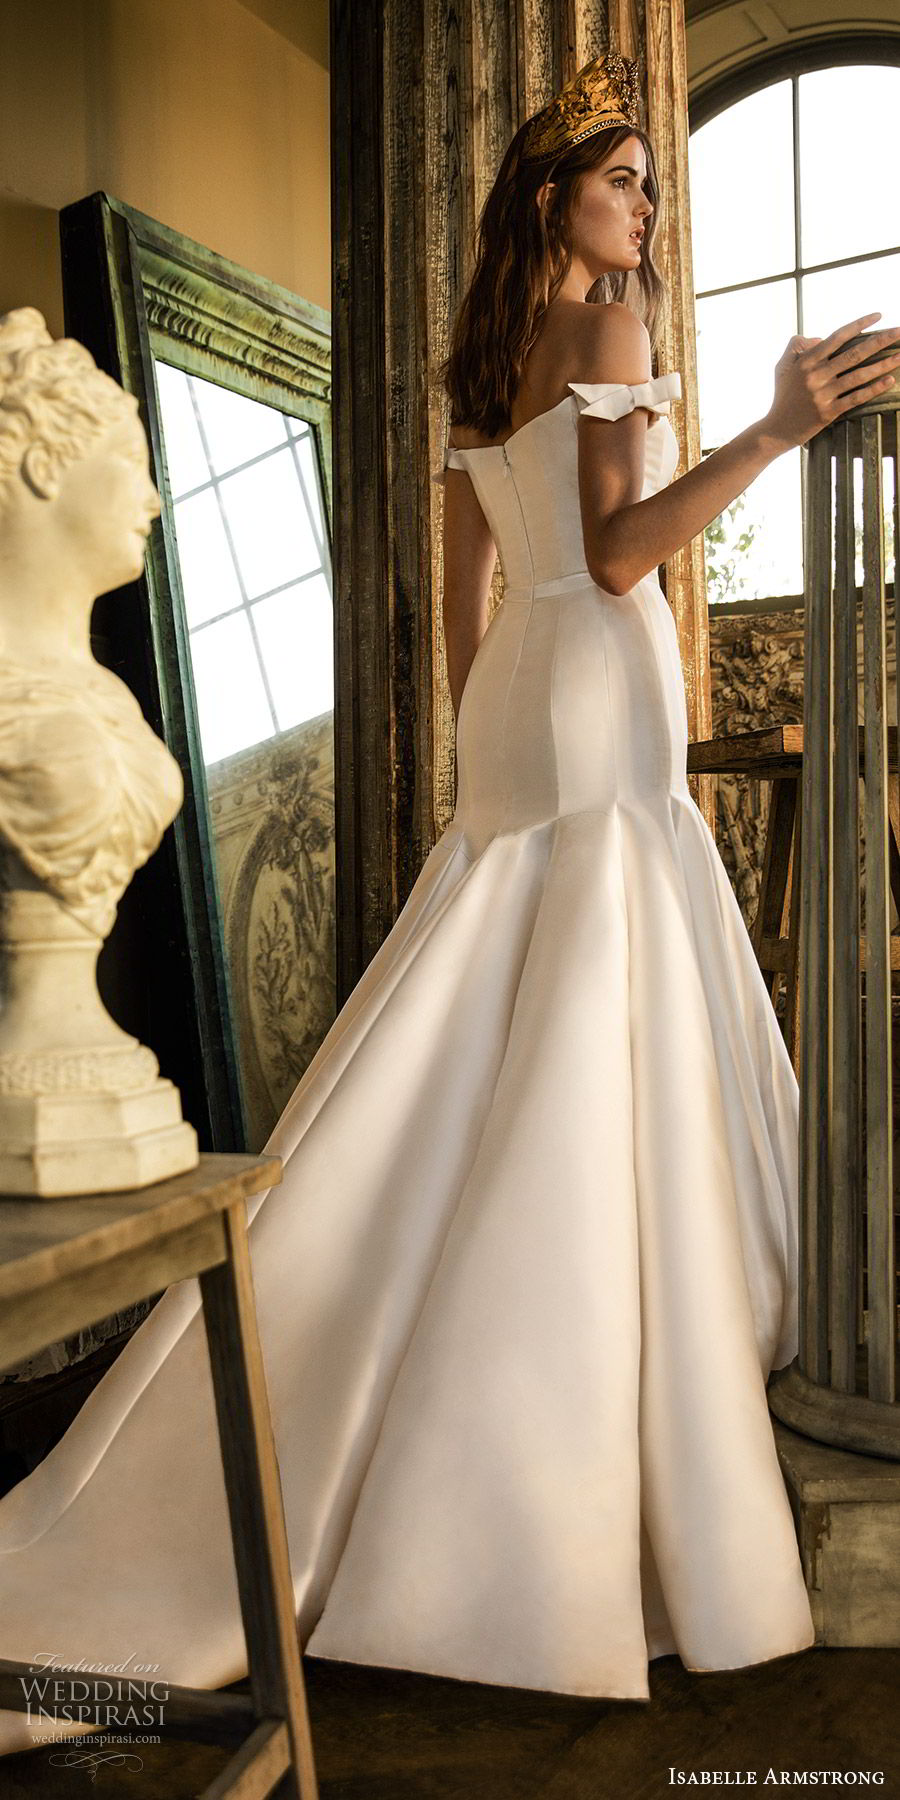 isabelle armstrong fall 2019 bridal off shoulder semi sweetheart fit flare mermaid wedding dress (6) minimally embellished clean chapel train bv